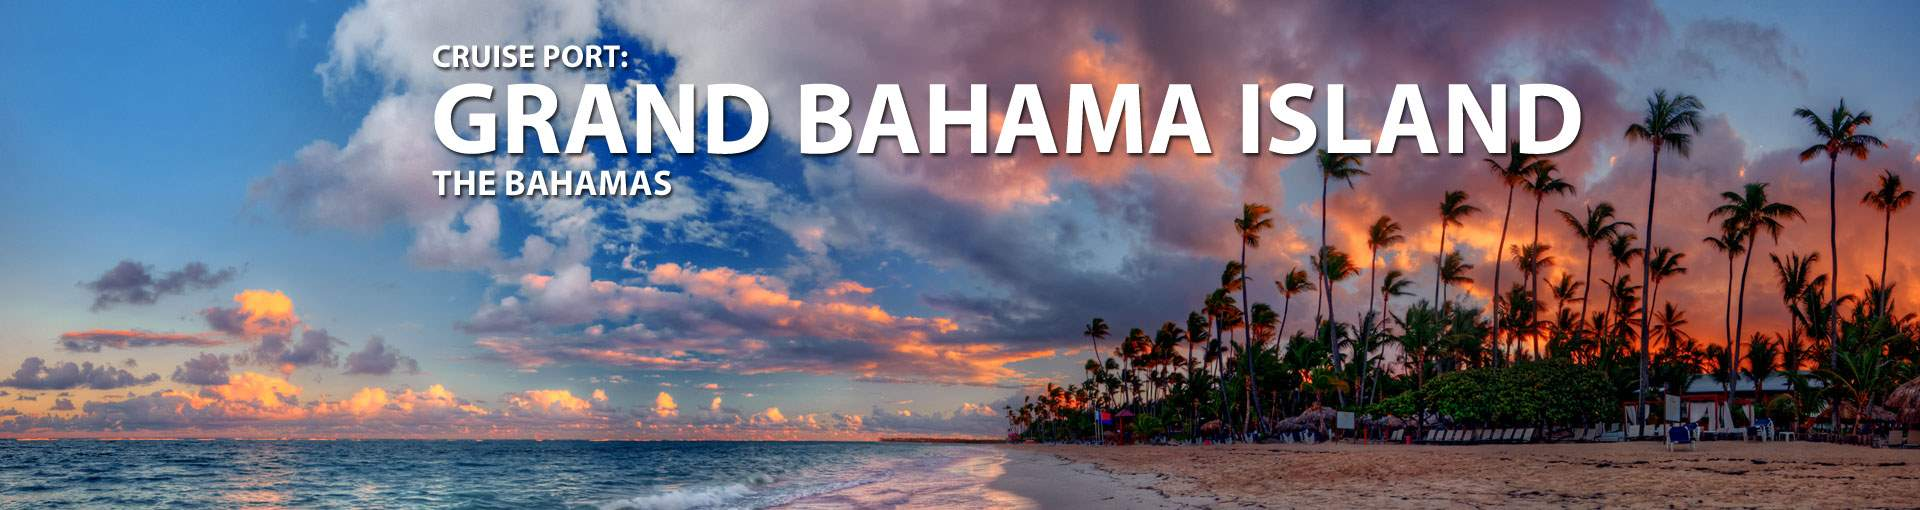 Cruises to Grand Bahama Island